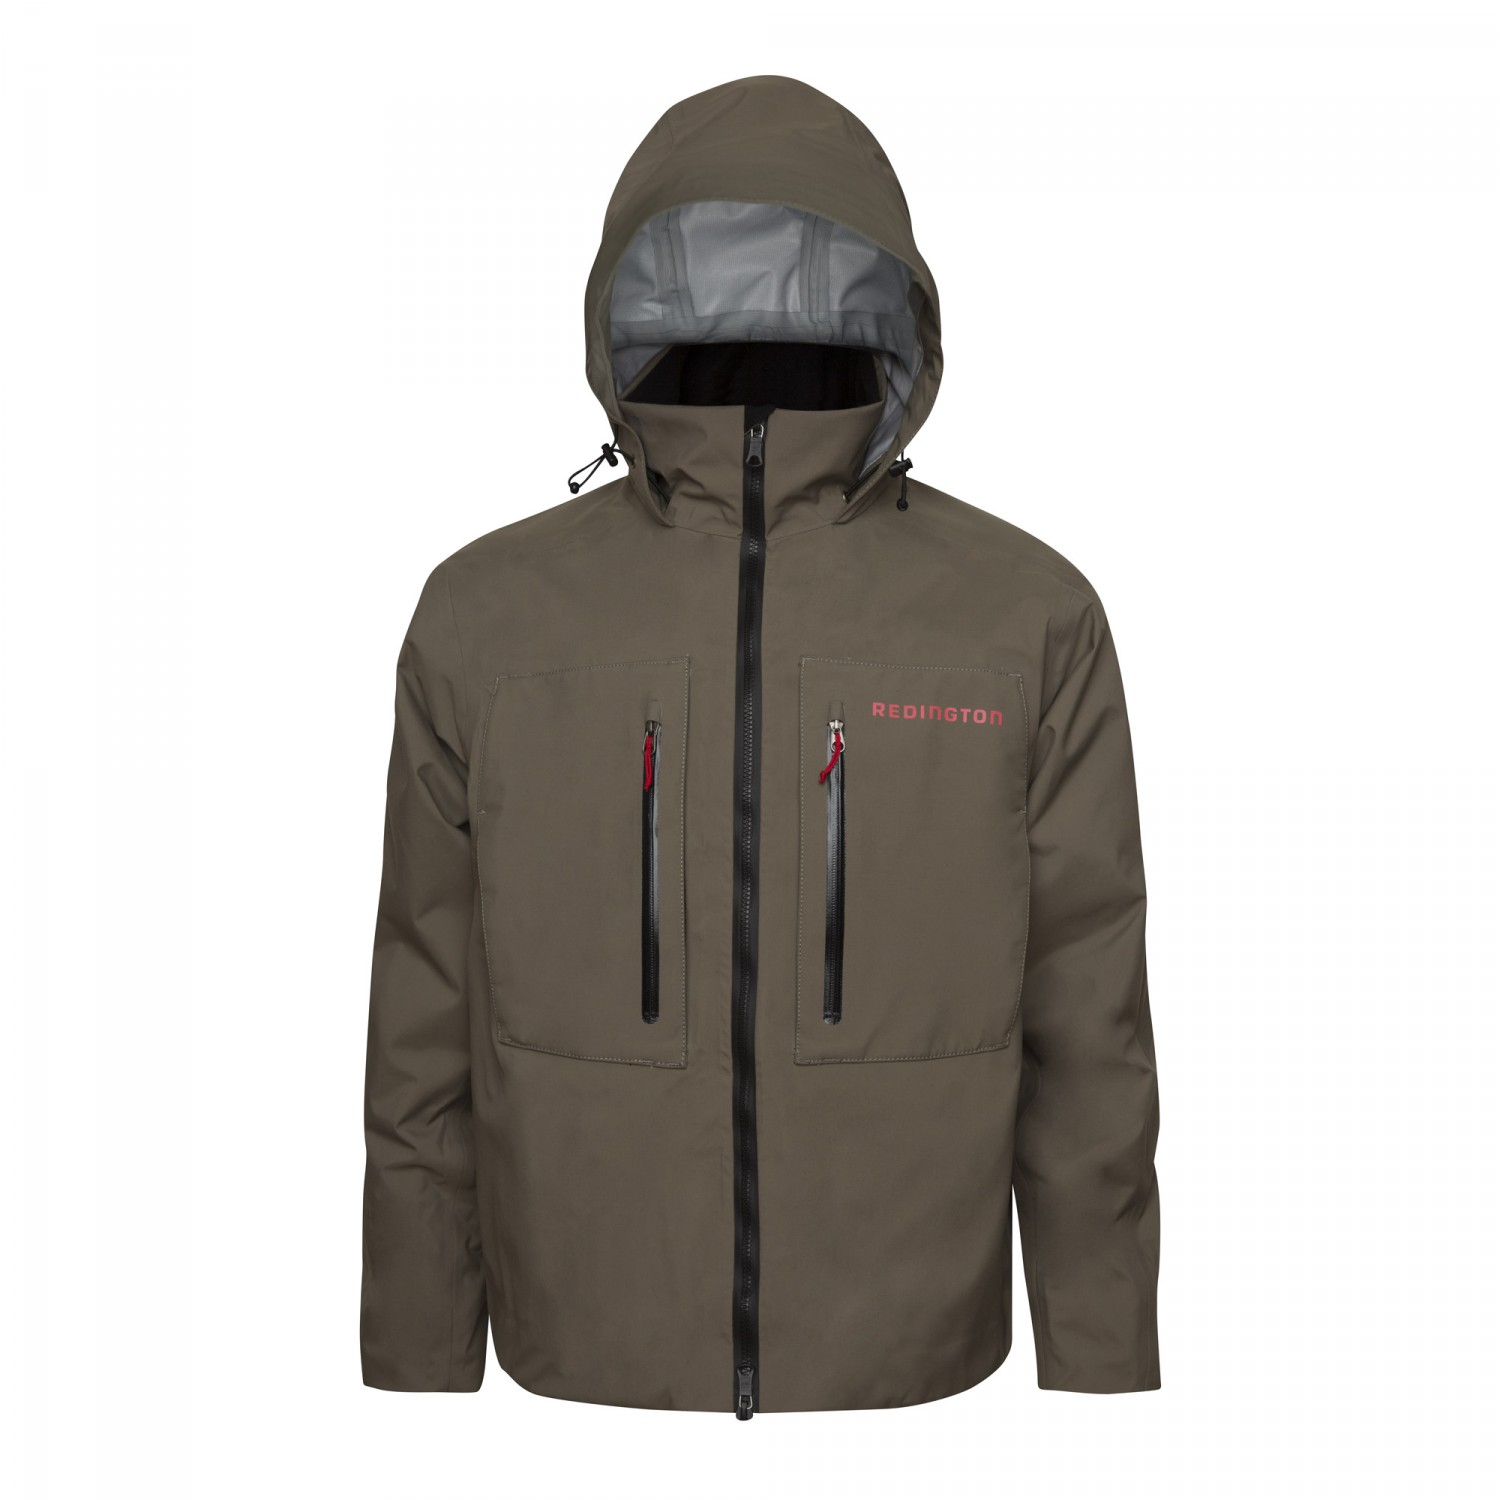 sonic-pro jacket | redington, Fishing Gear